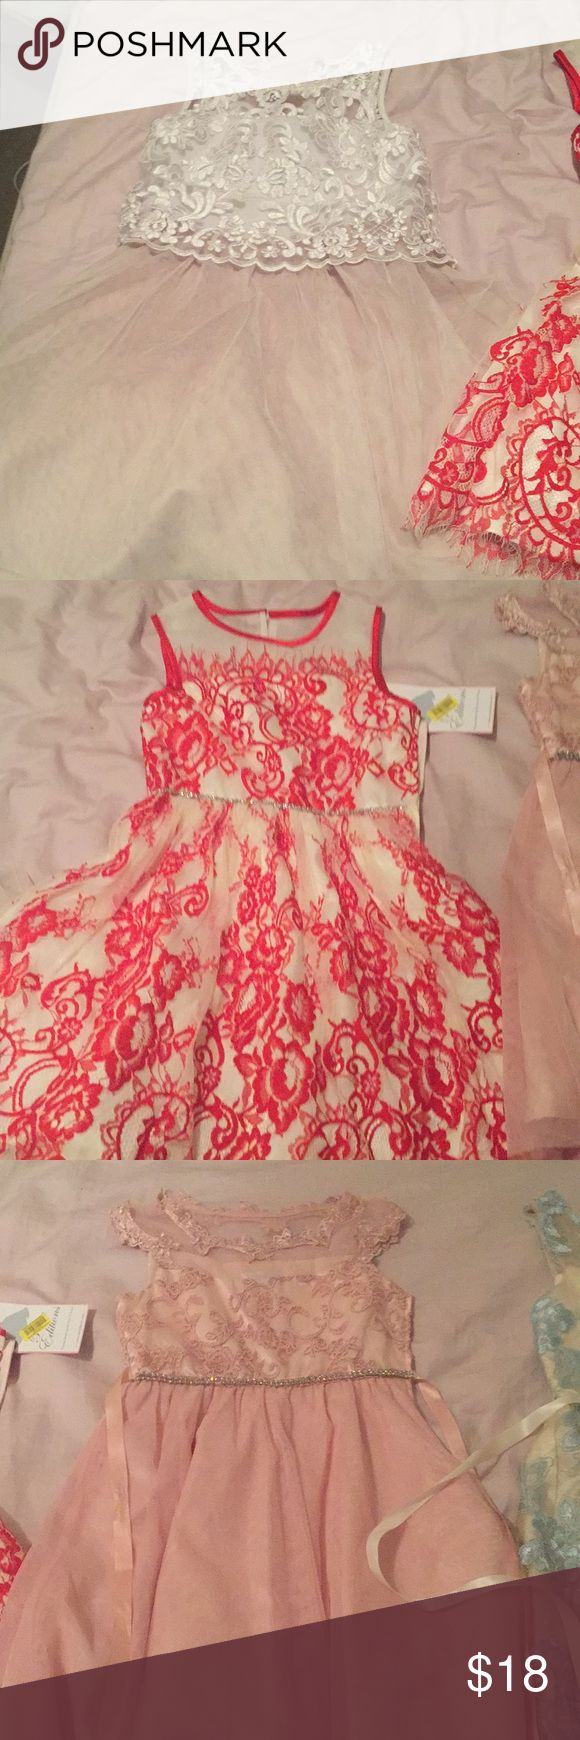 Gorgeous bundled dresses...size 8 and 10 Perfect dresses for a nice outing dillards Dresses Formal